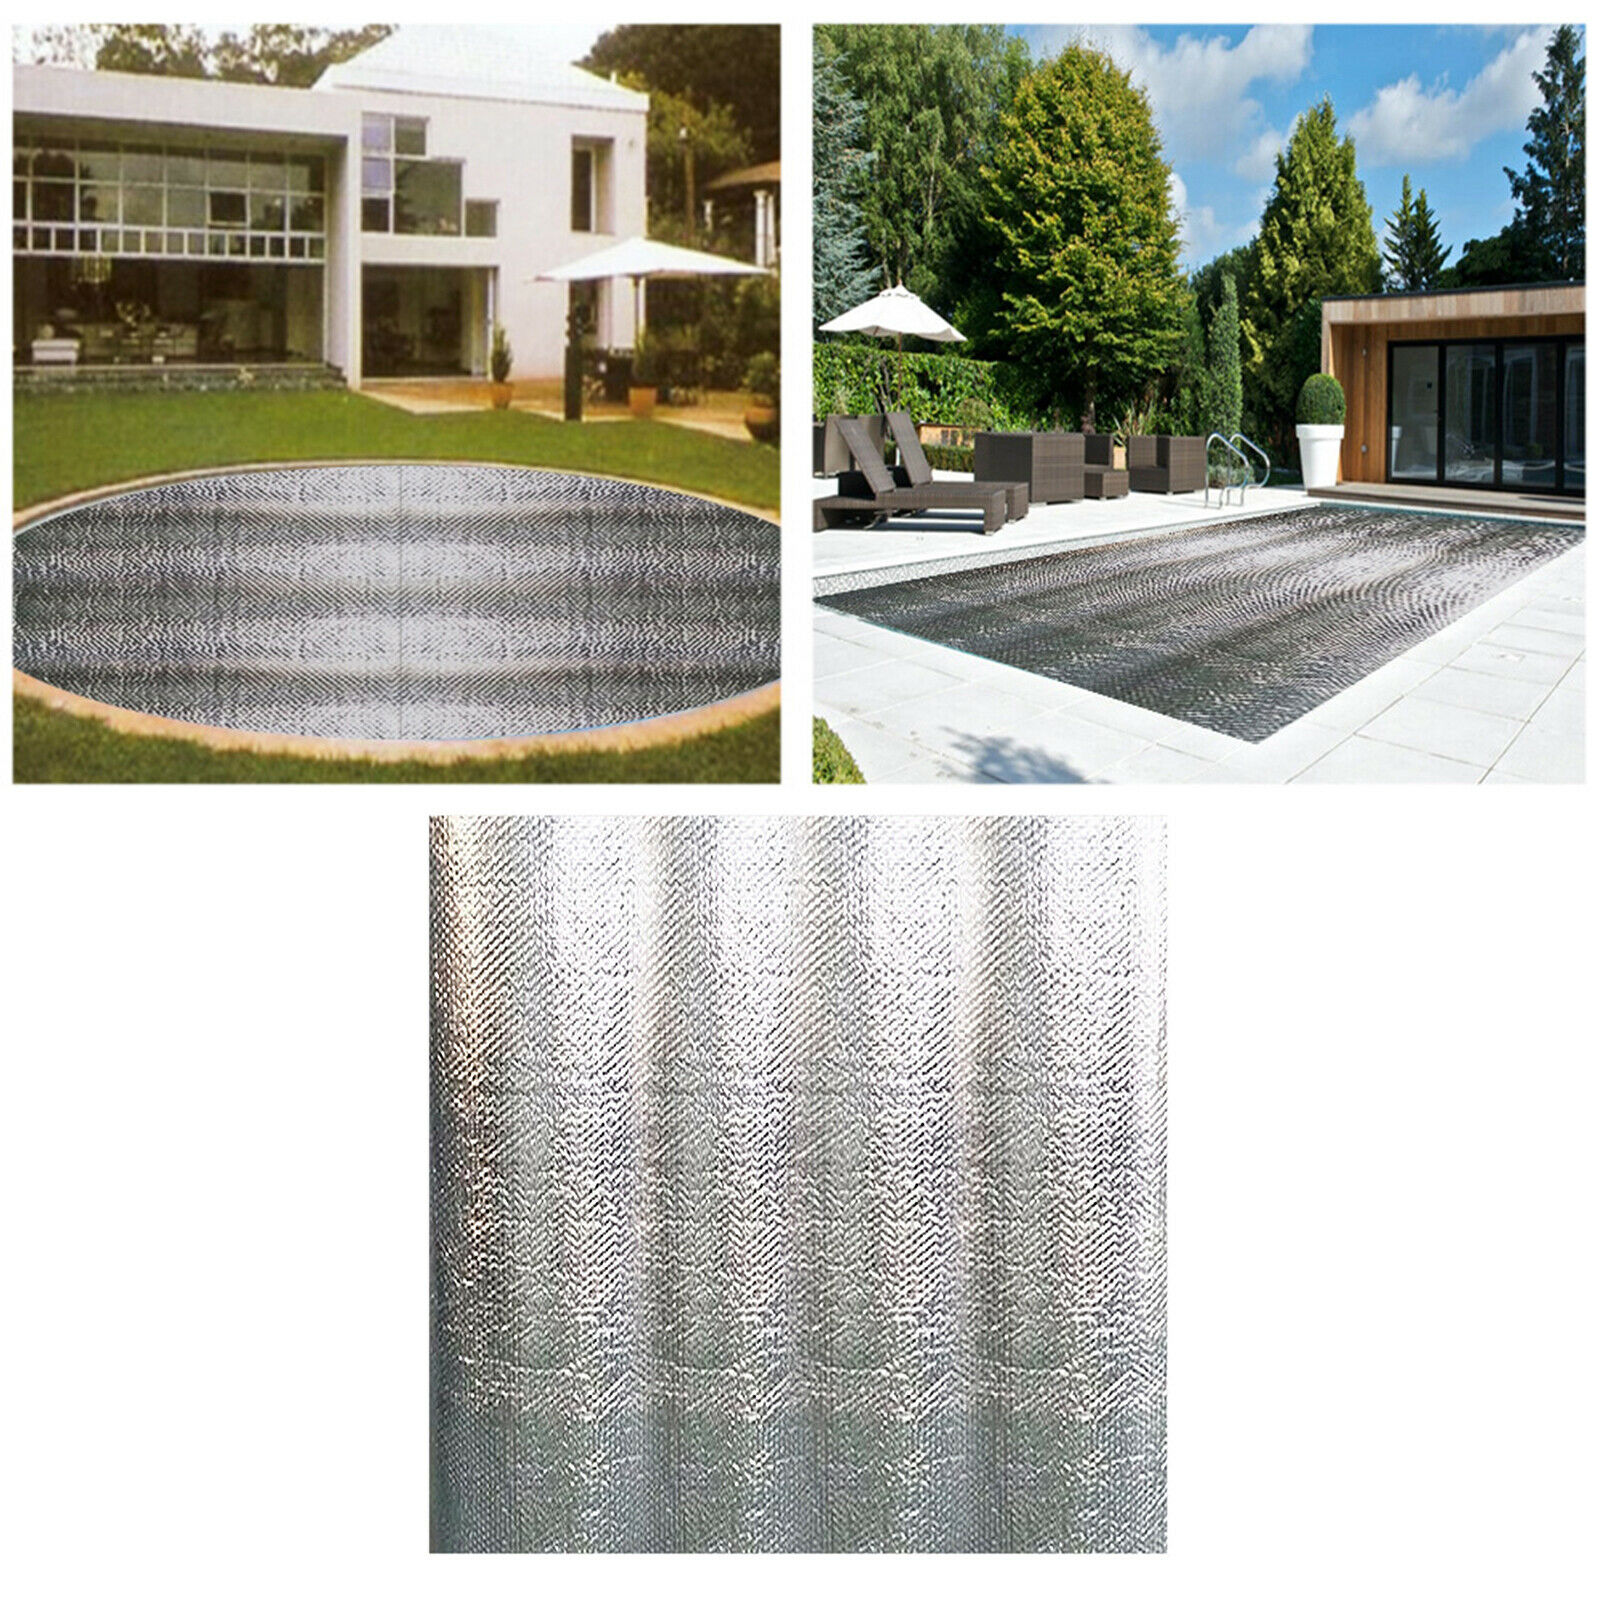 Swimming Pool Cover Heat Preservation Thermal Insulation Insulation Film